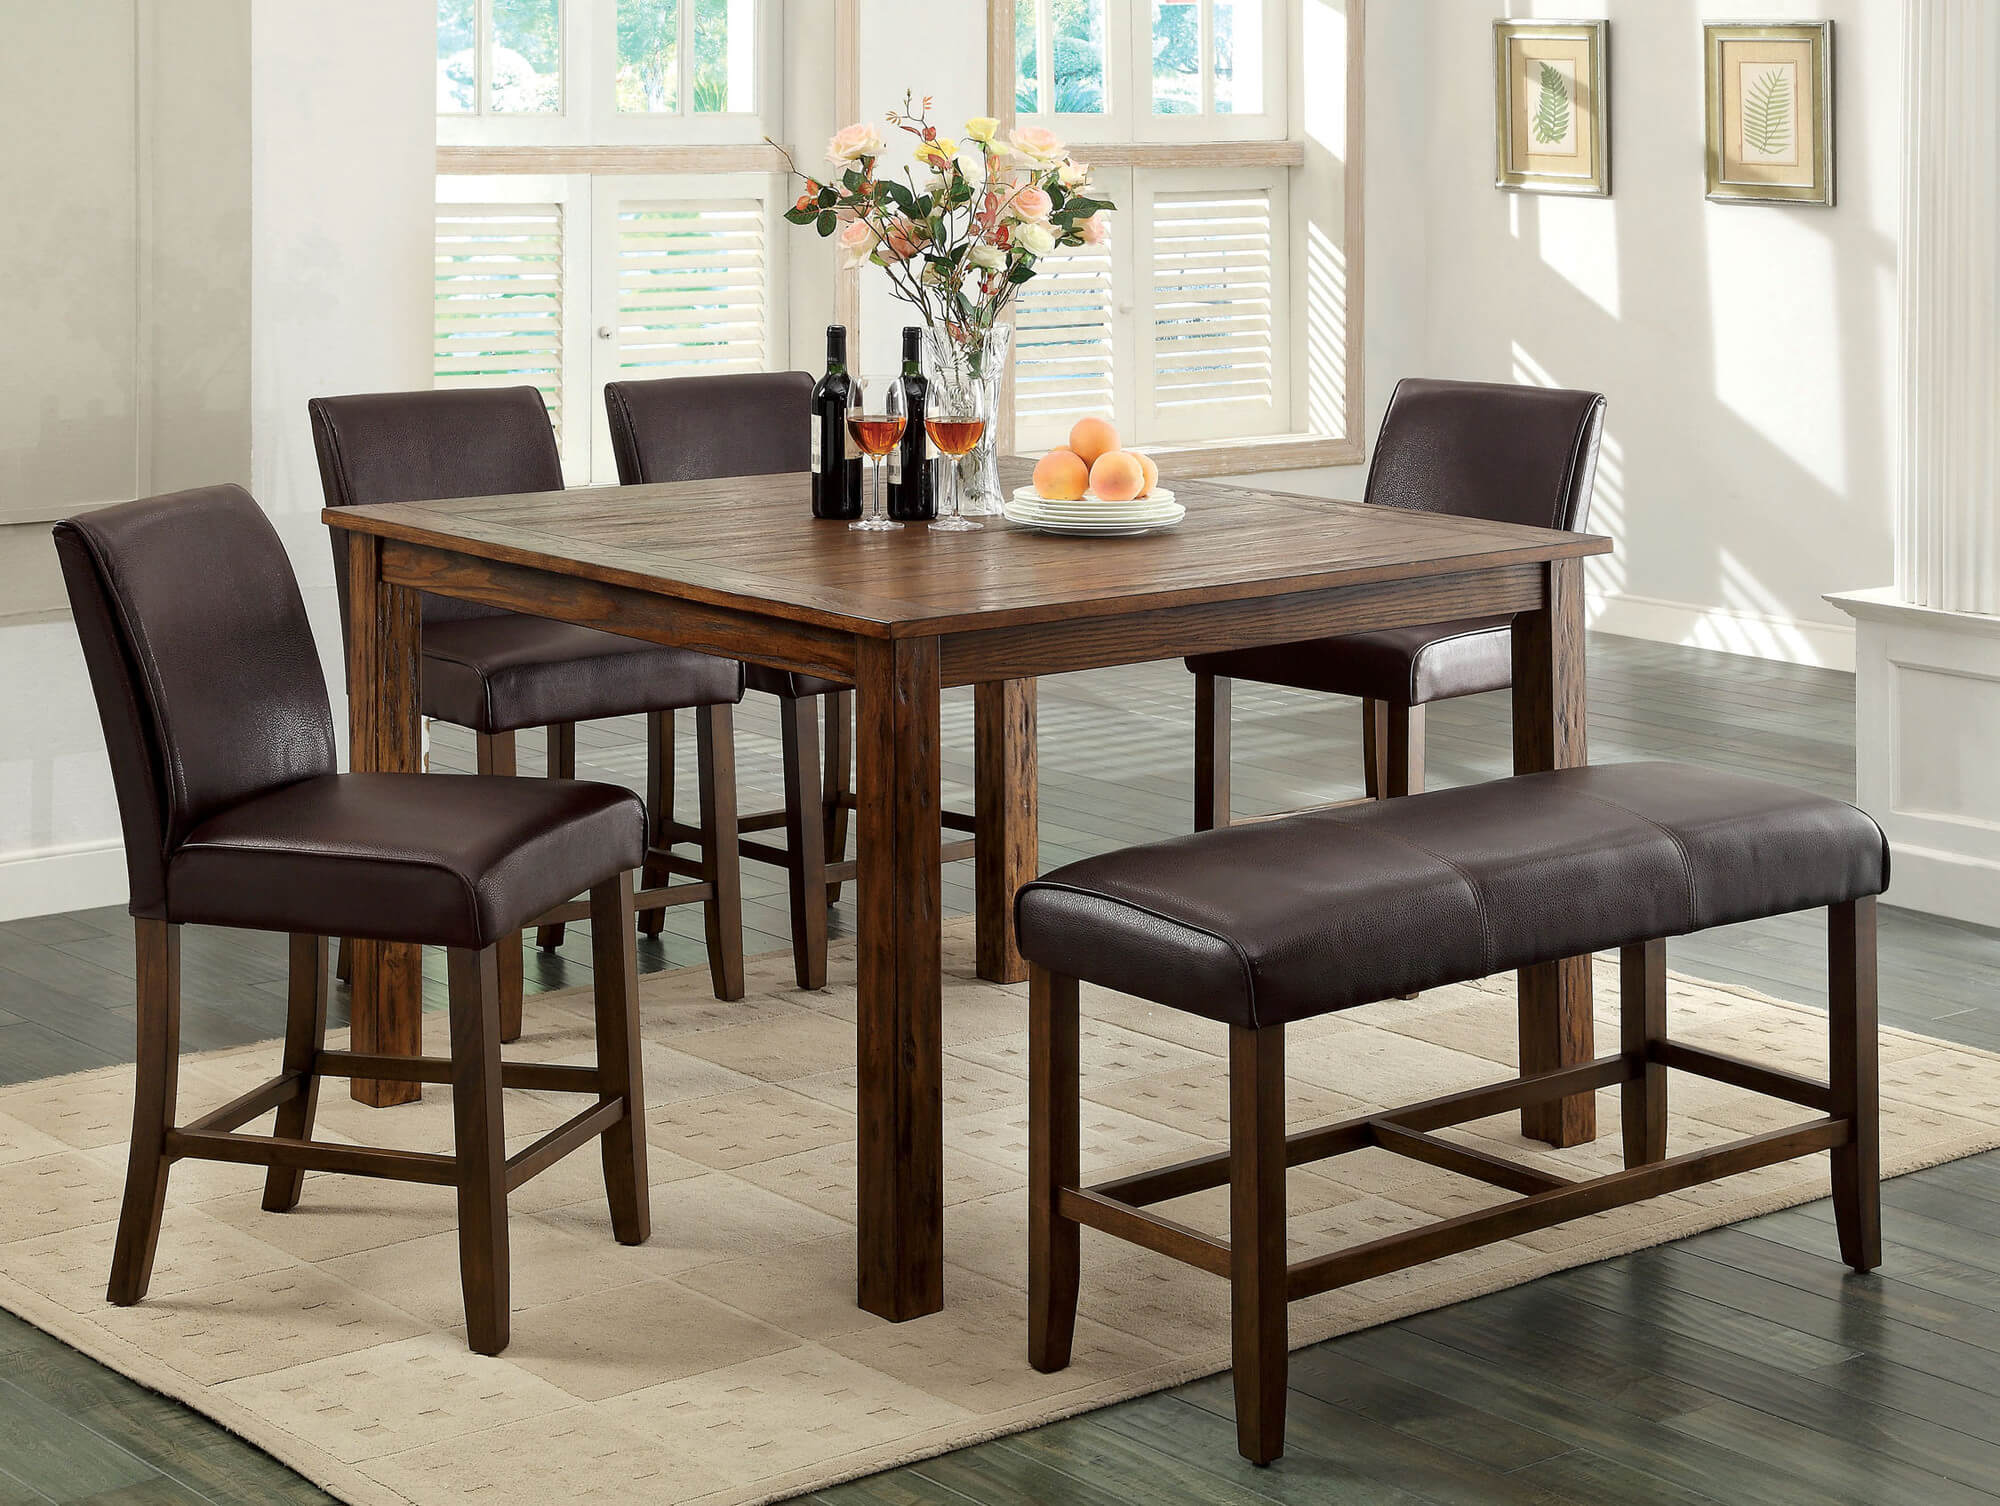 dining room sets bench seating rustic kitchen chairs Counter height rustic dining room set with bench Wood is dark oak finish constructed